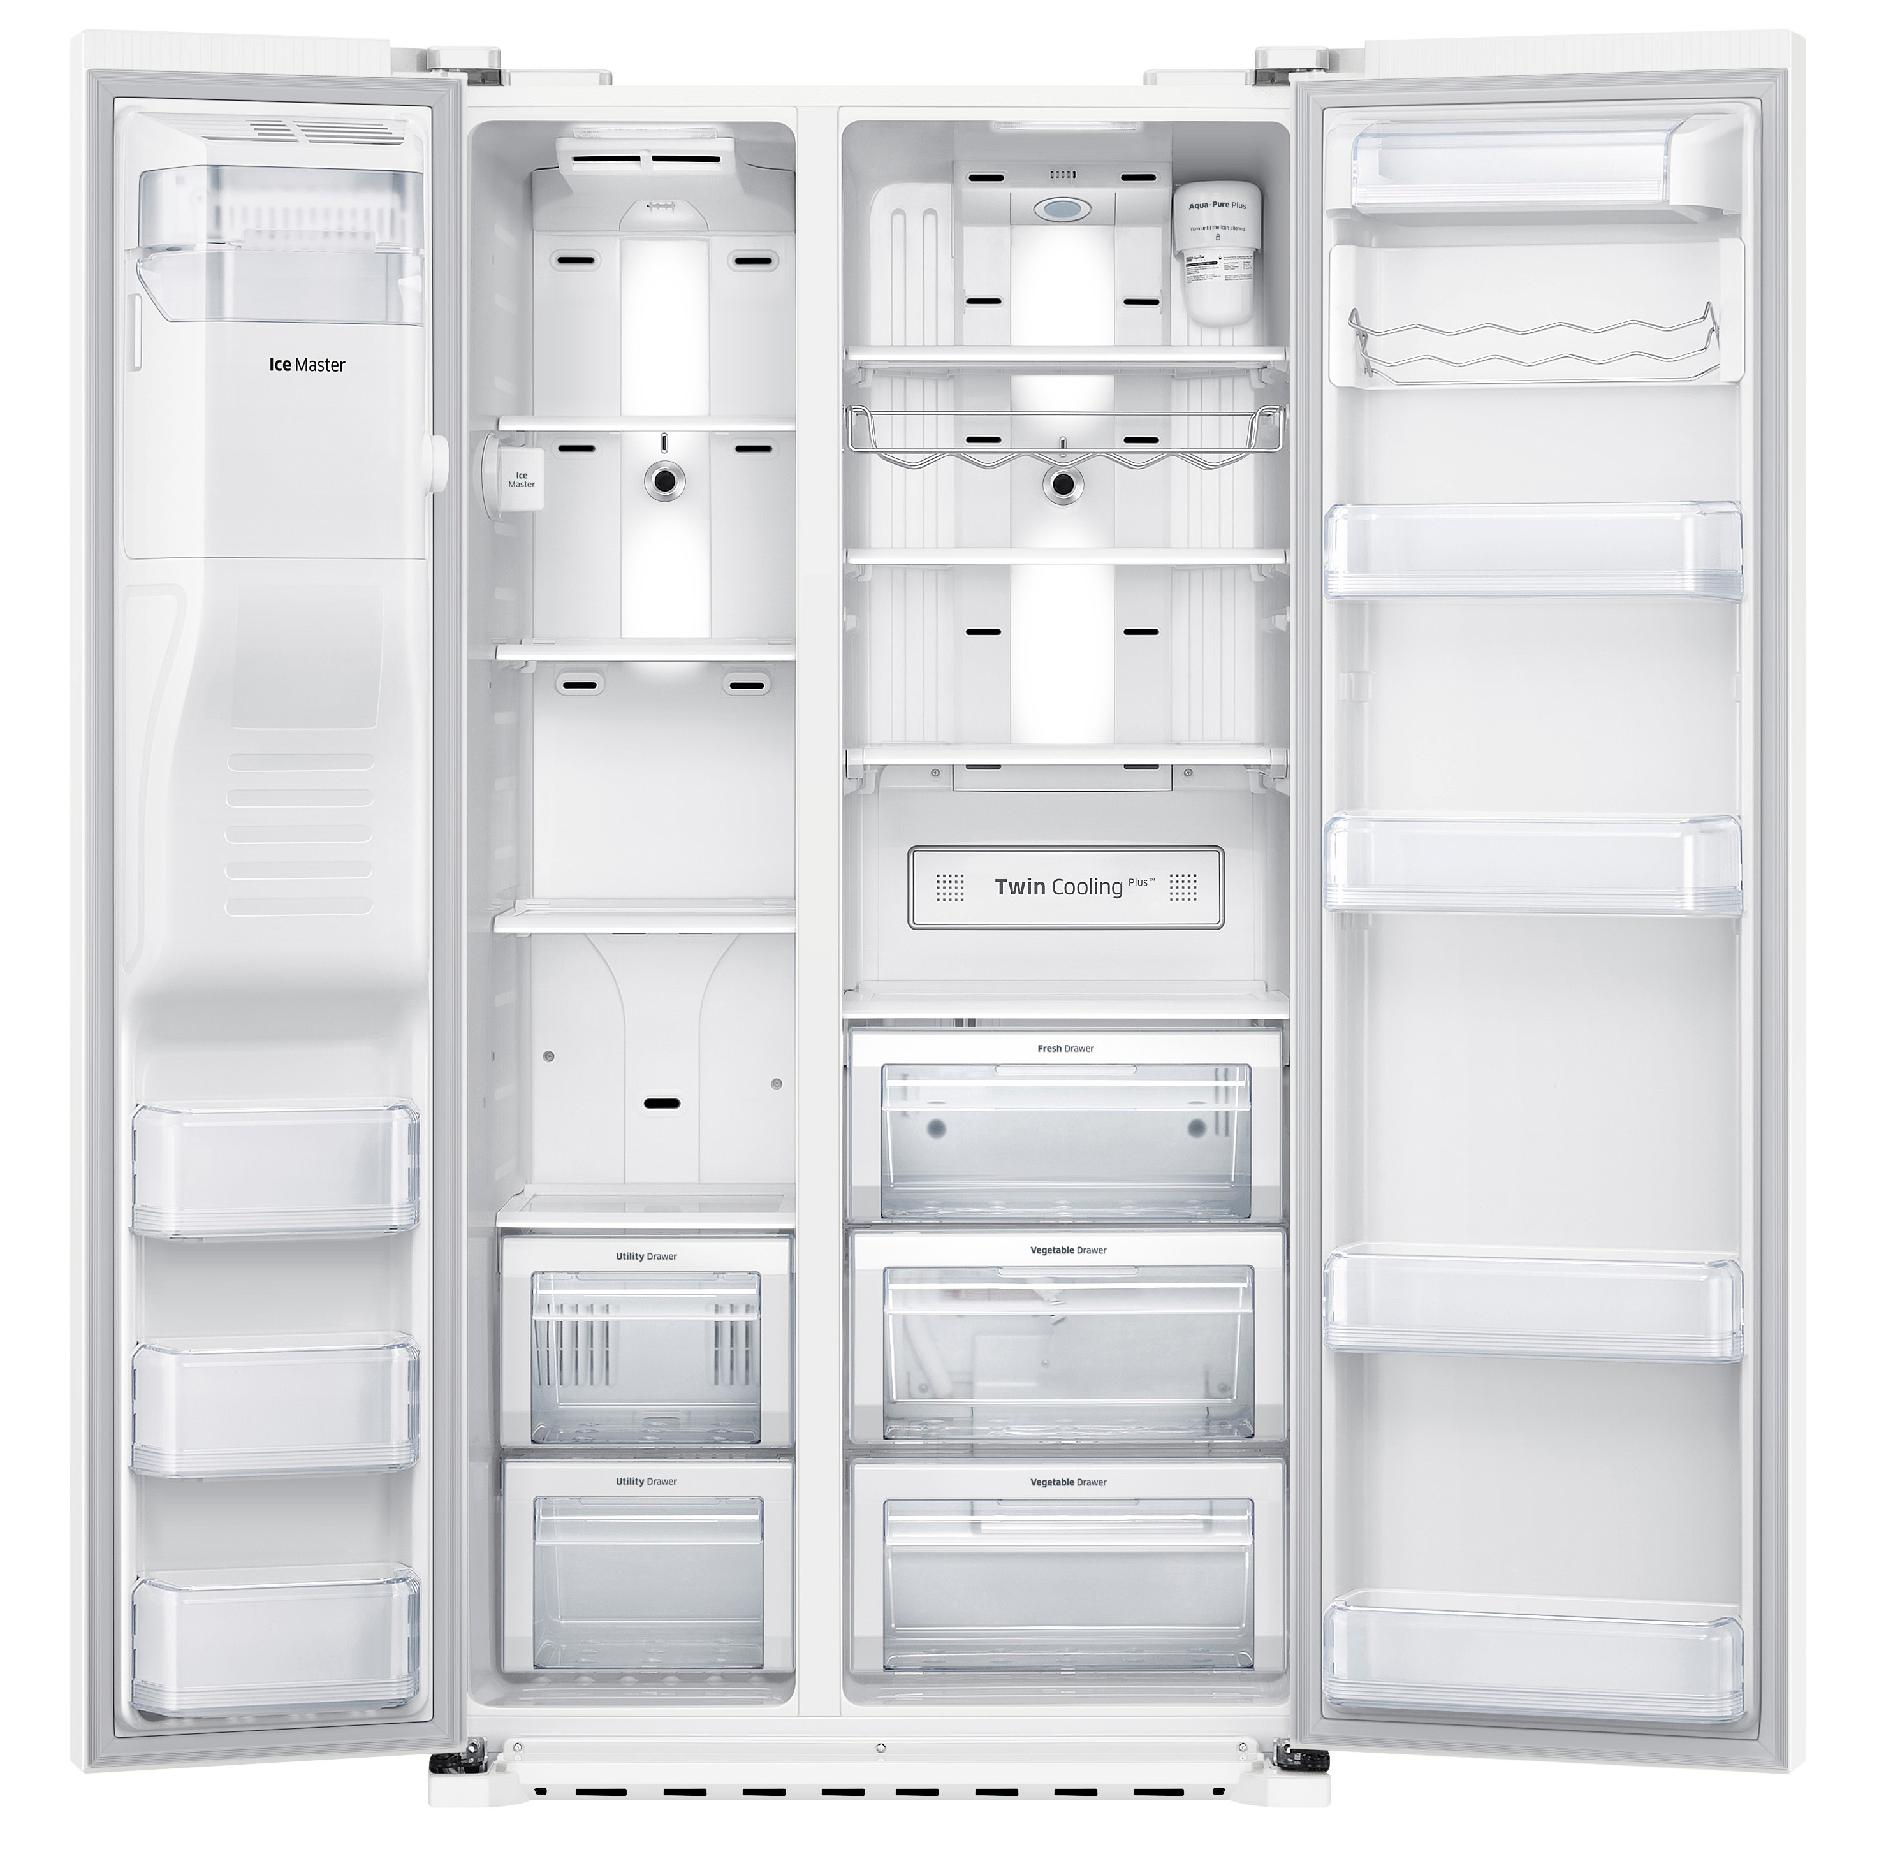 Samsung 22 cu. ft. Counter Depth Side-by-Side Refrigerator - White